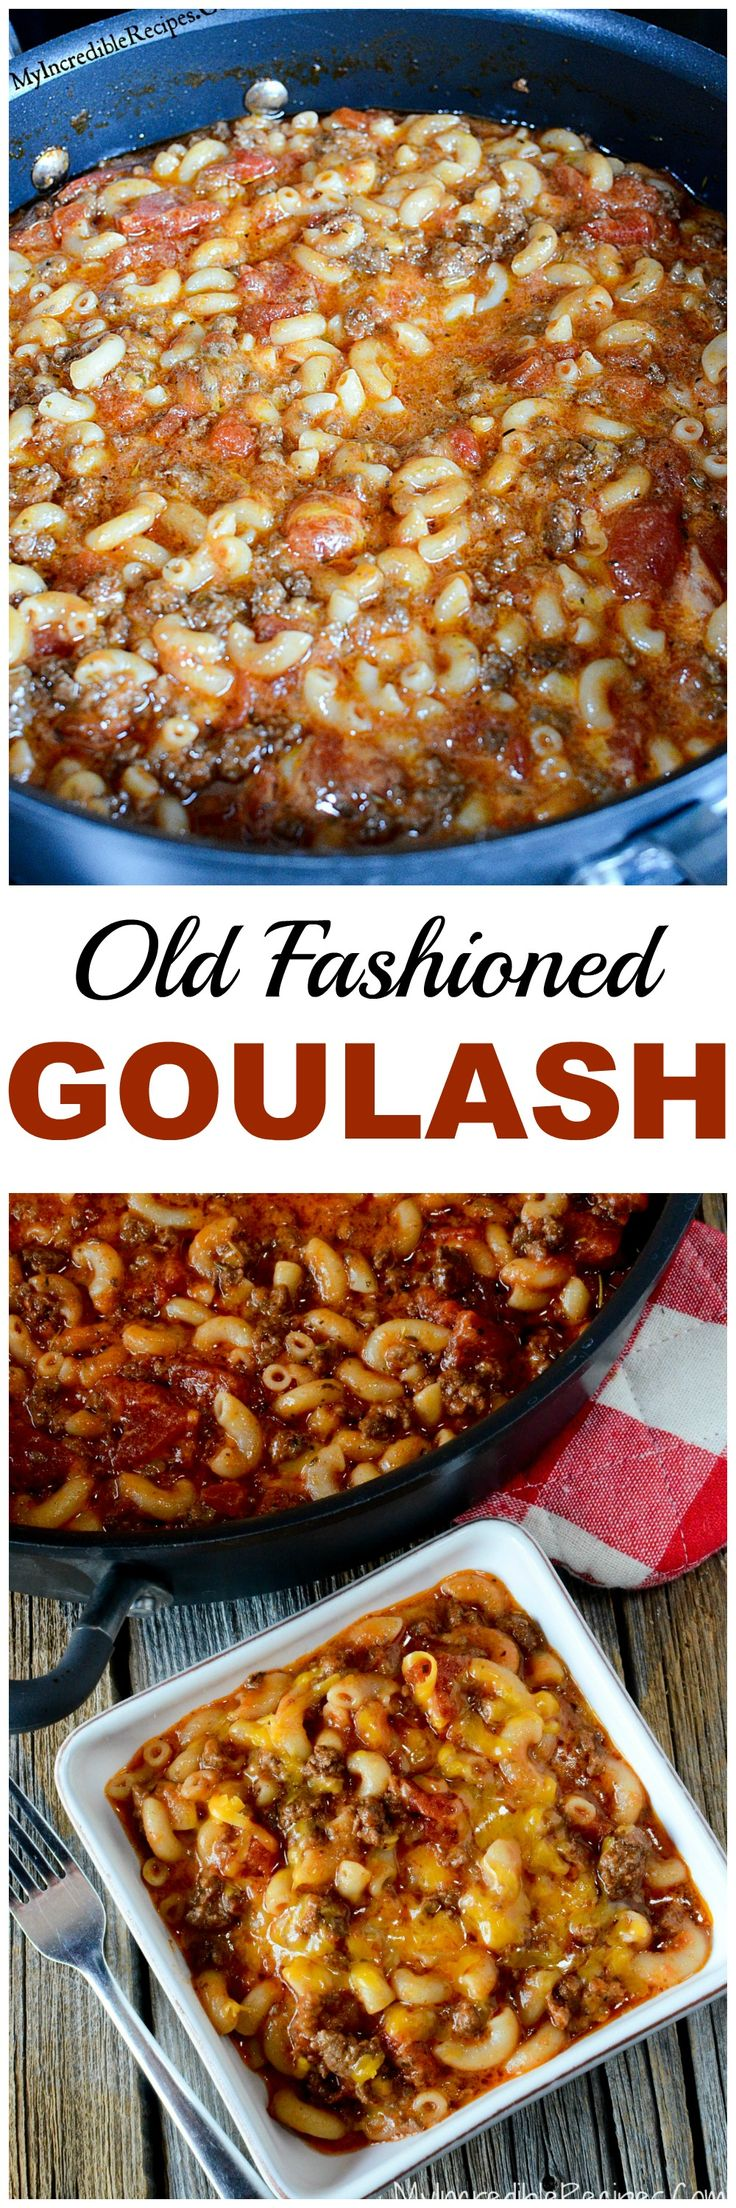 Old Fashioned Goulash!